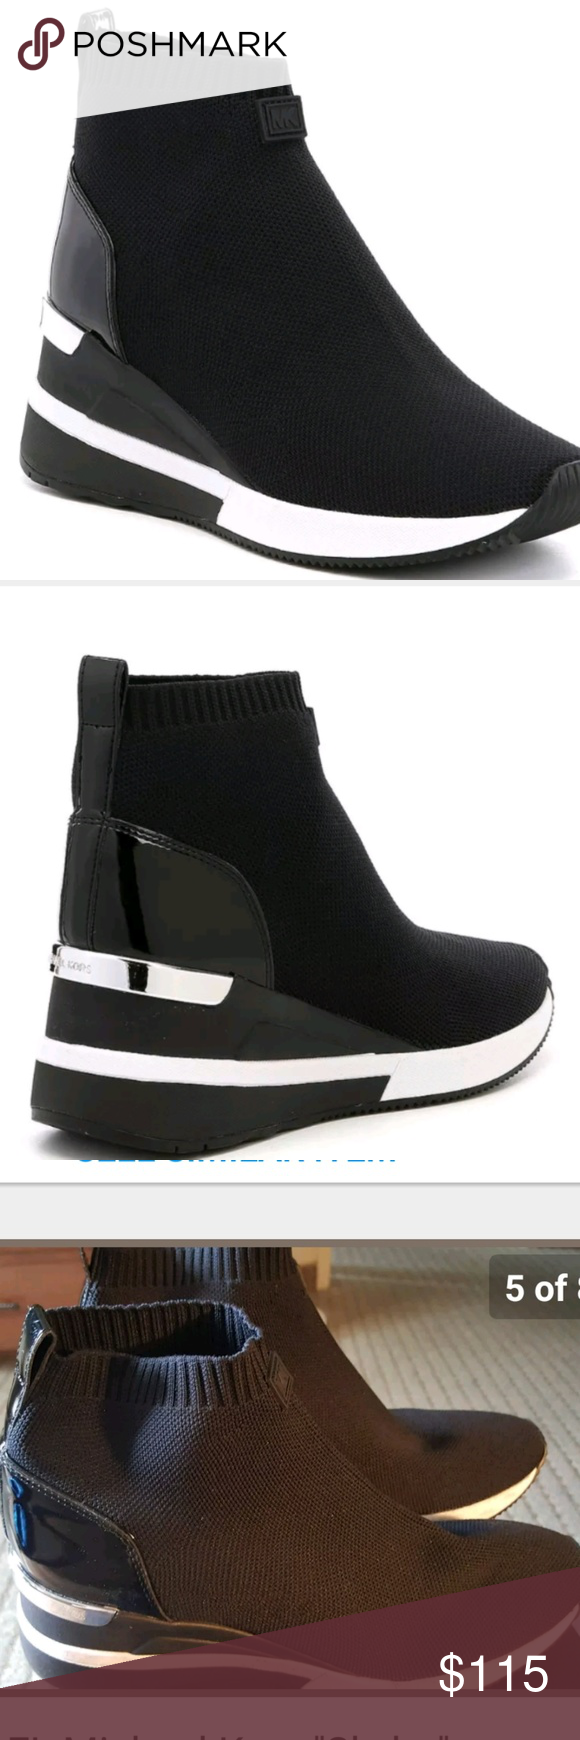 b824bbf0501 MICHAEL Michael Kors Skyler Wedge Sneaker Booties MICHAEL Michael Kors  Skyler Wedge Sneaker Booties. From